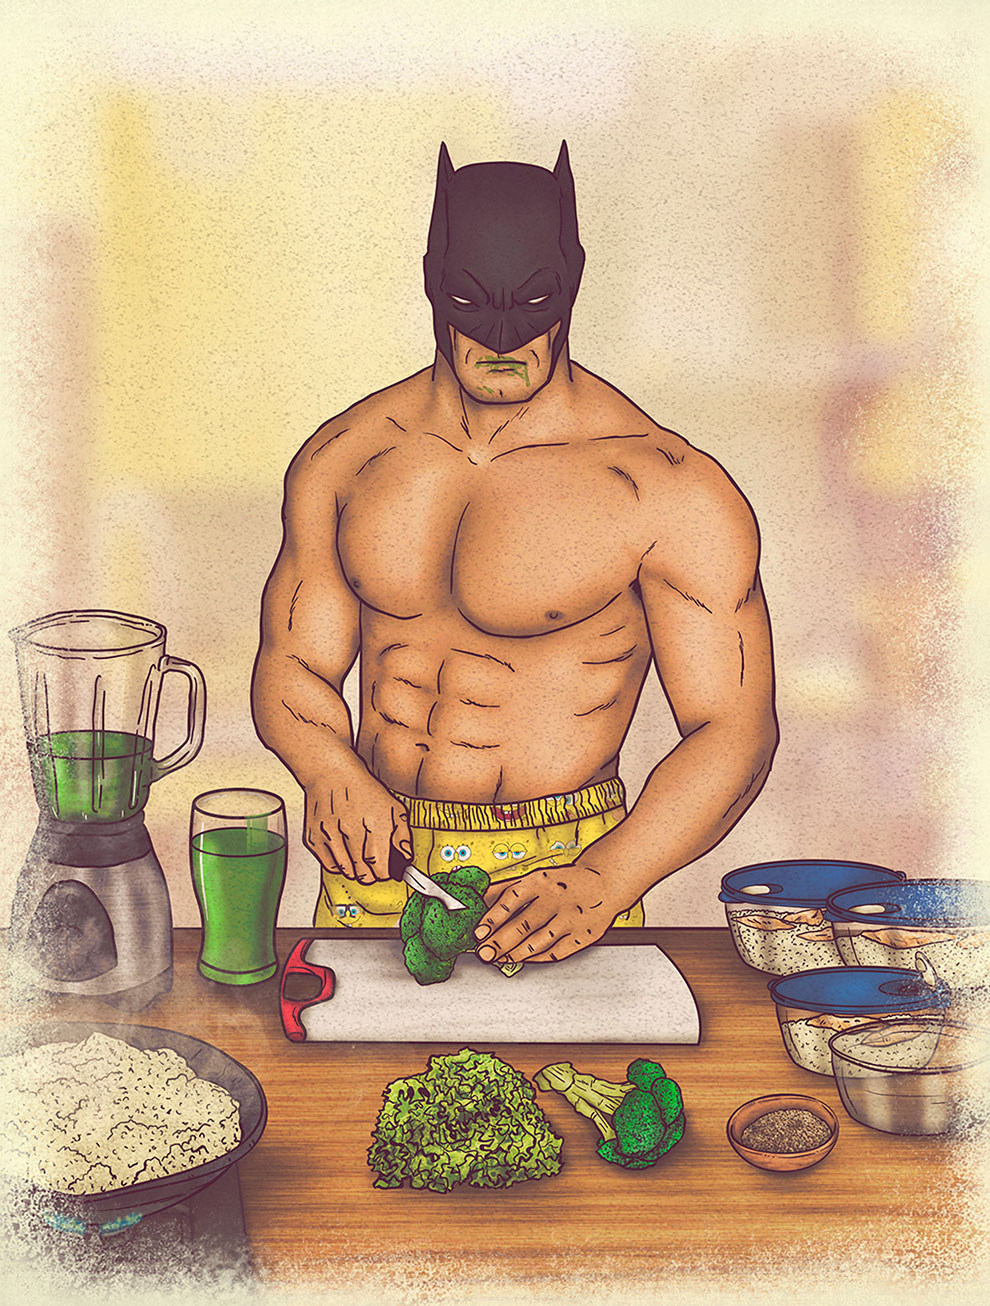 The Everyday Lives of Superheroes: The Juice-tice League Project (13 pics)